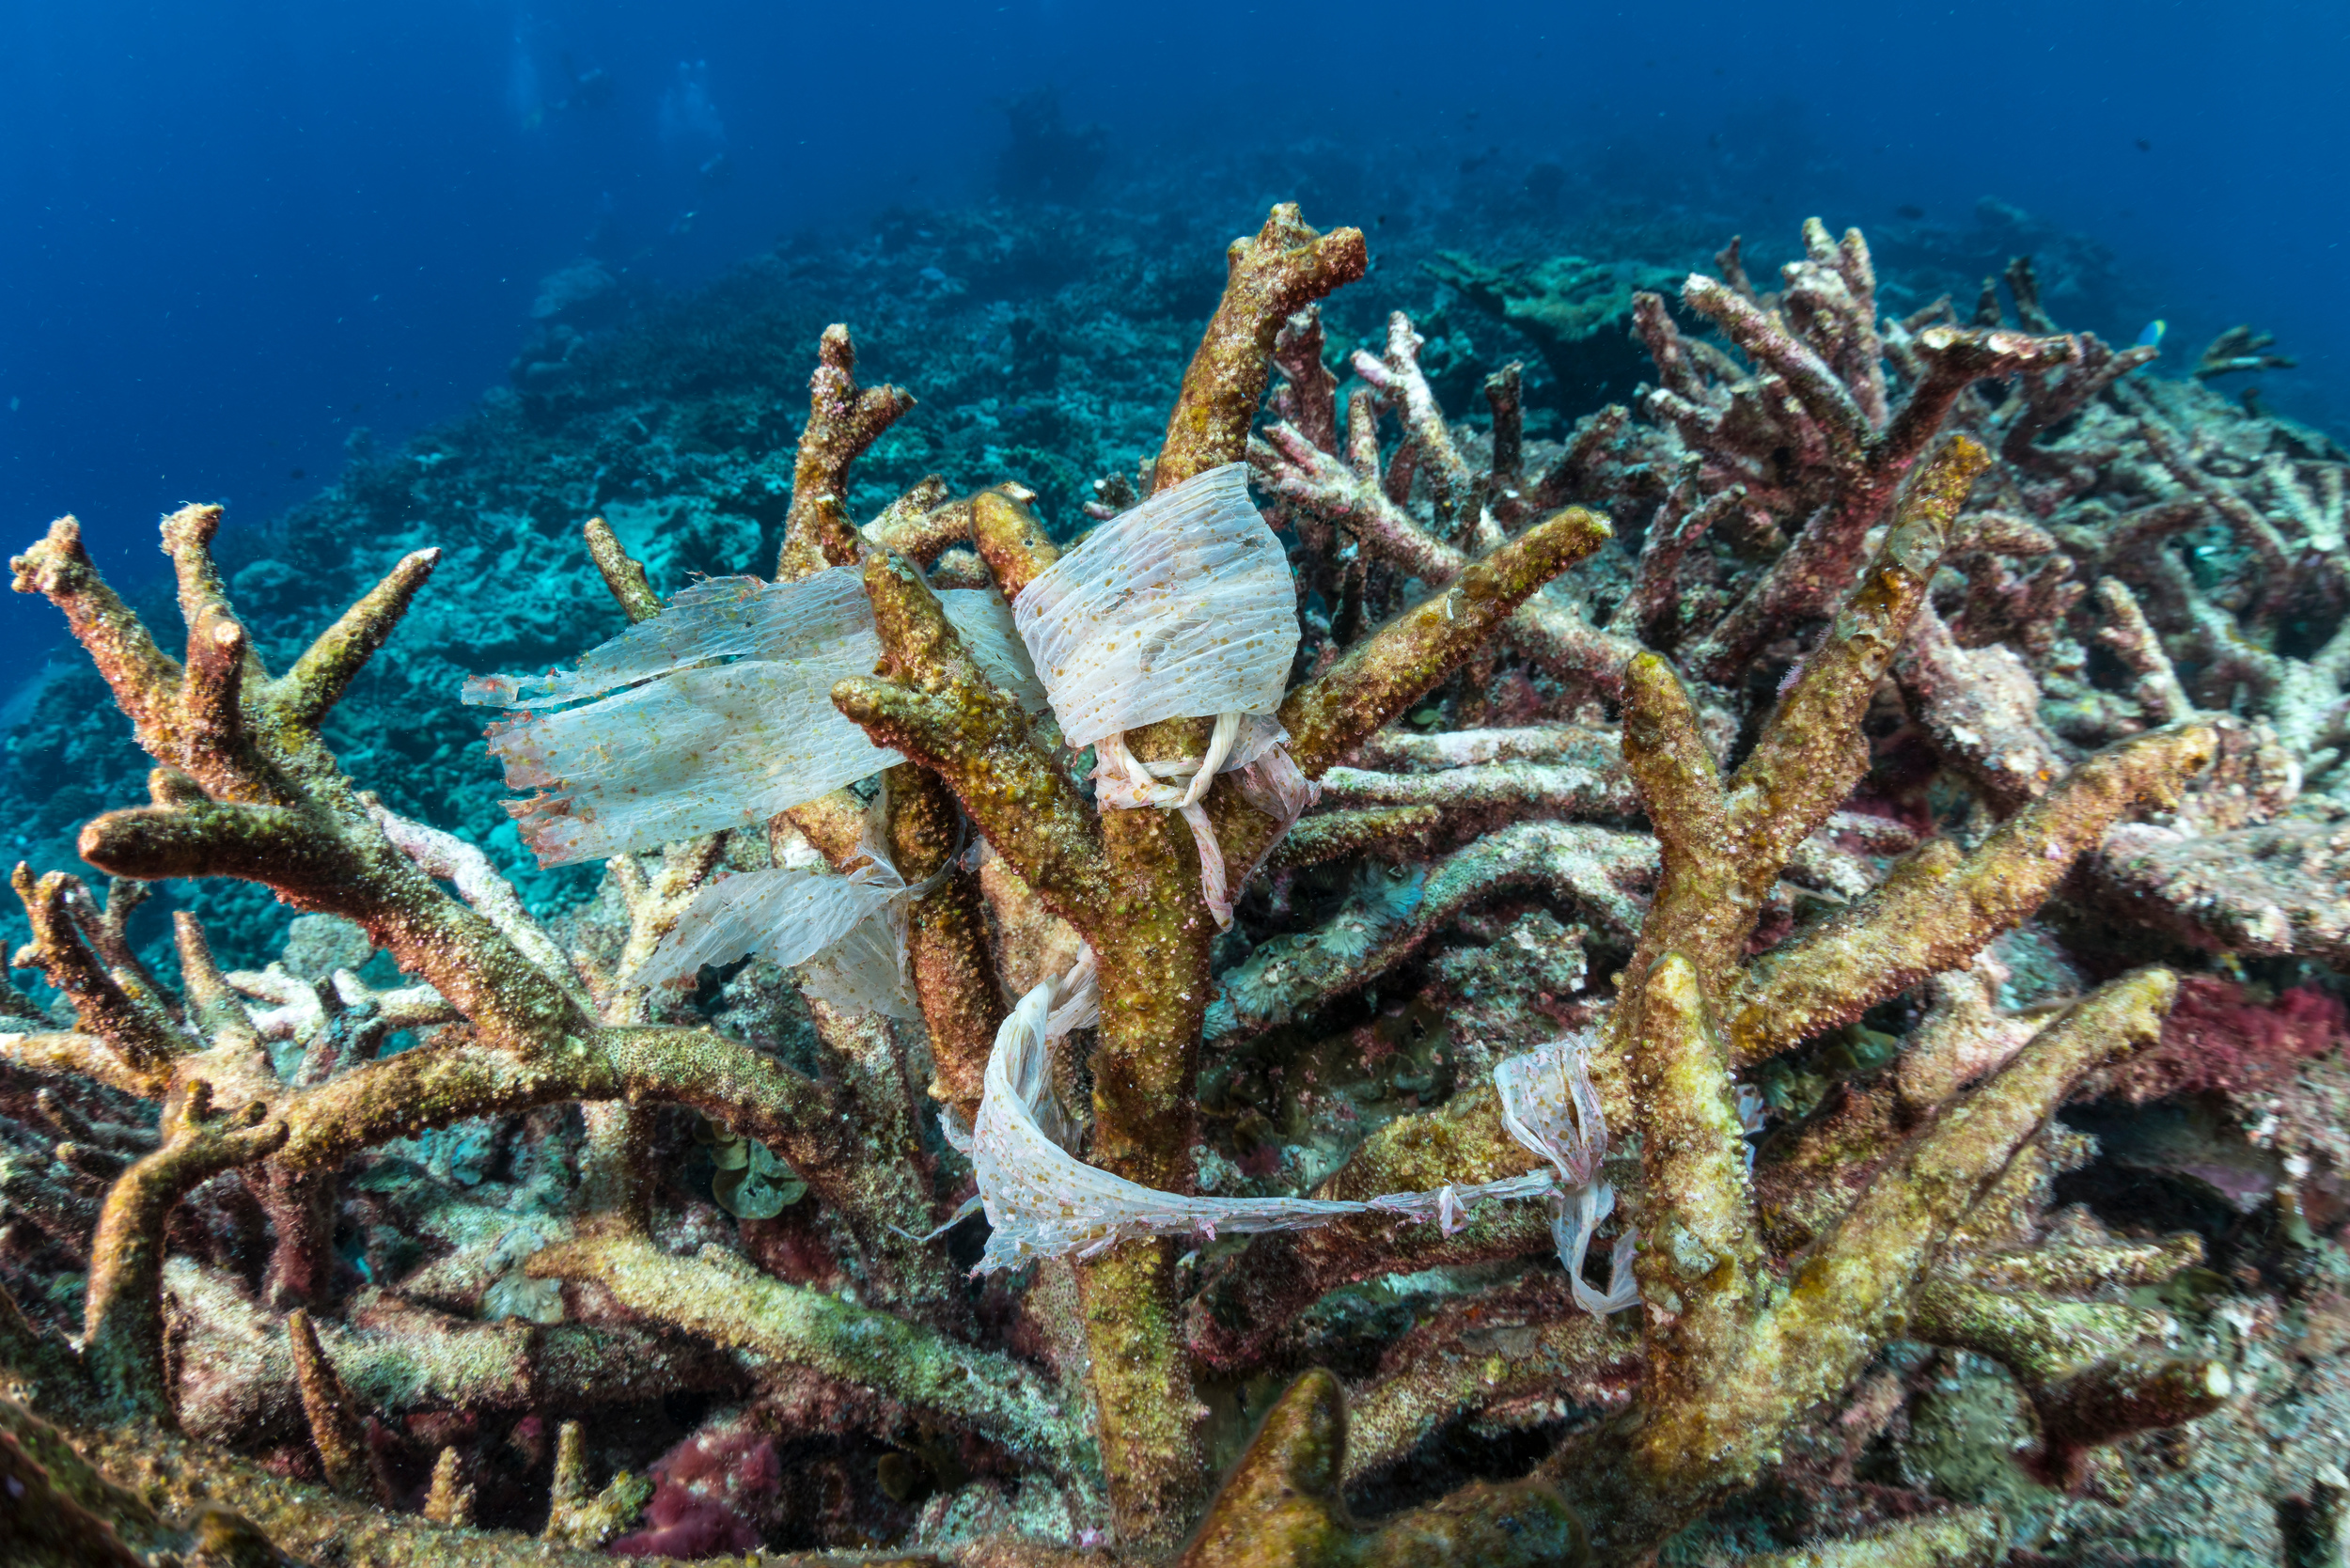 Plastic caught up in corals underwater in the Maldives